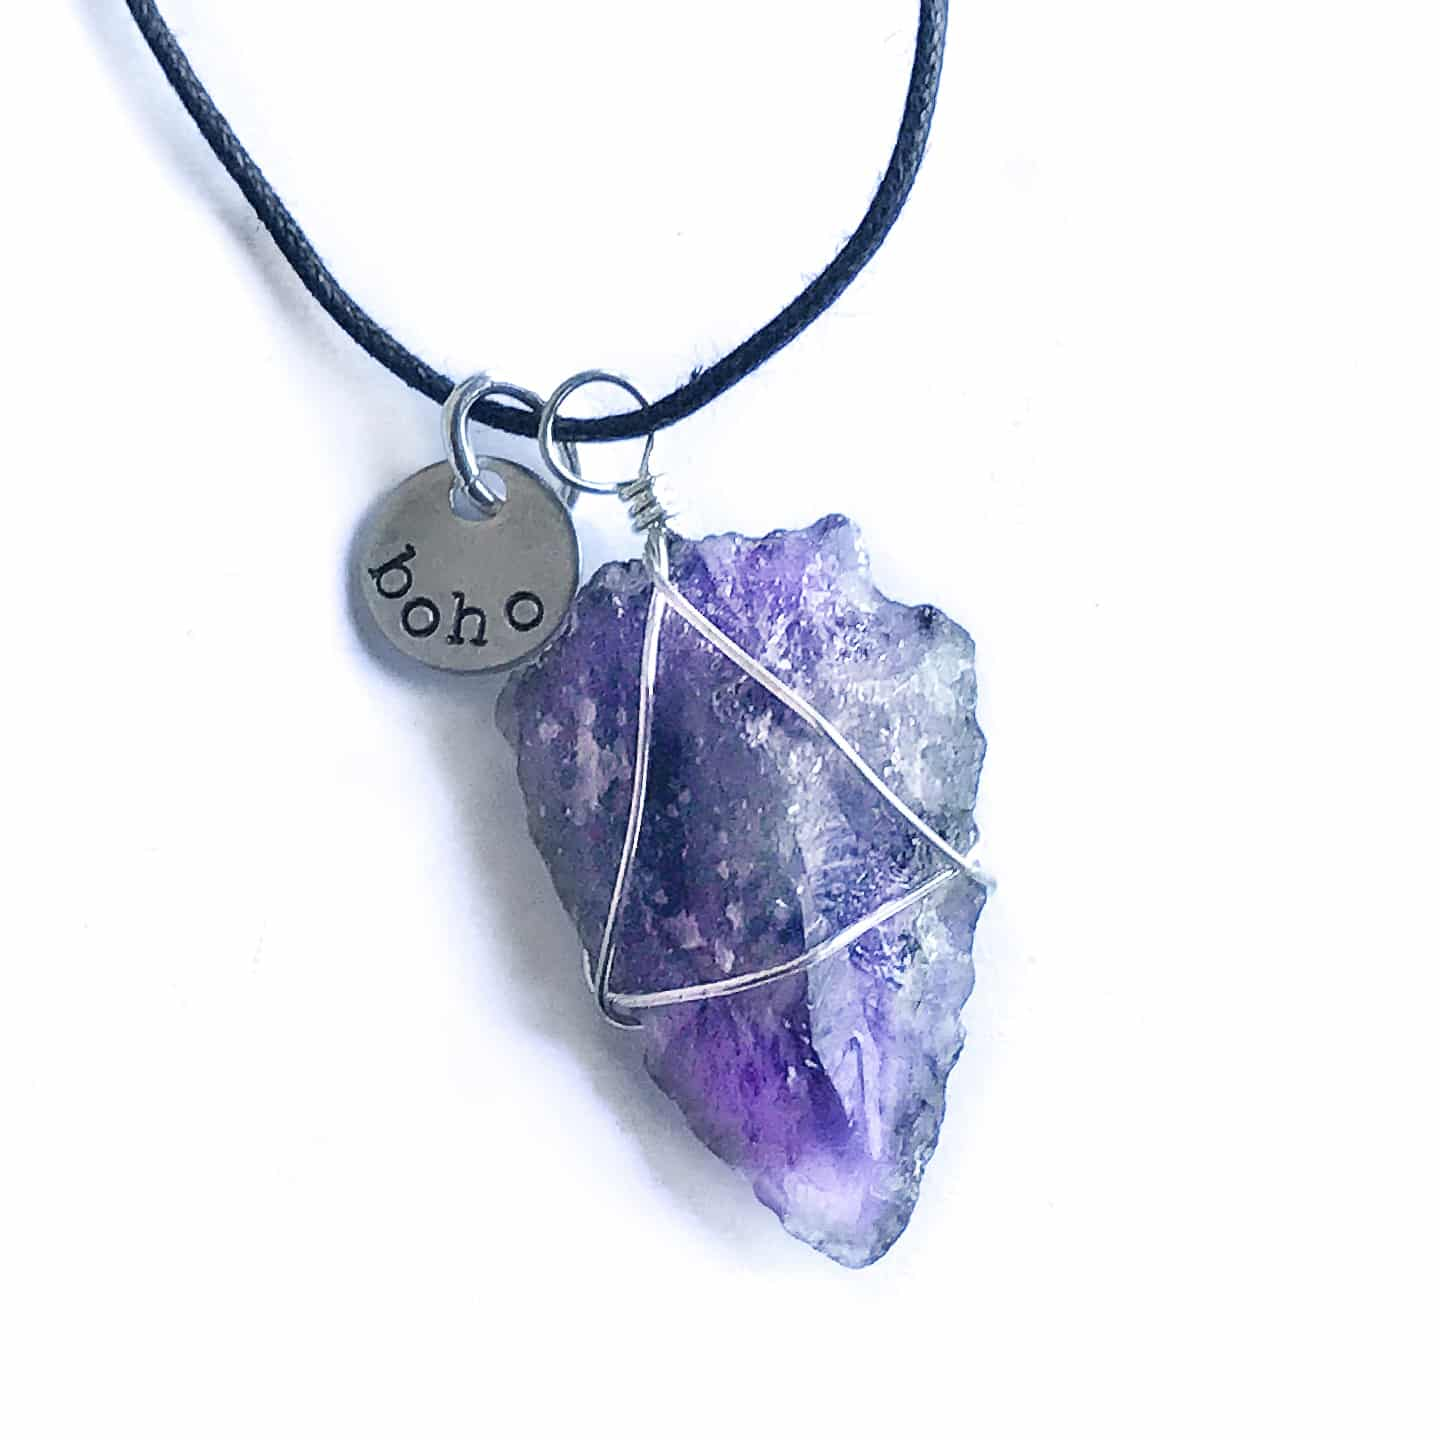 rough jewelry necklaces handmade gemstone necklace silver reija eden amethyst cut shop